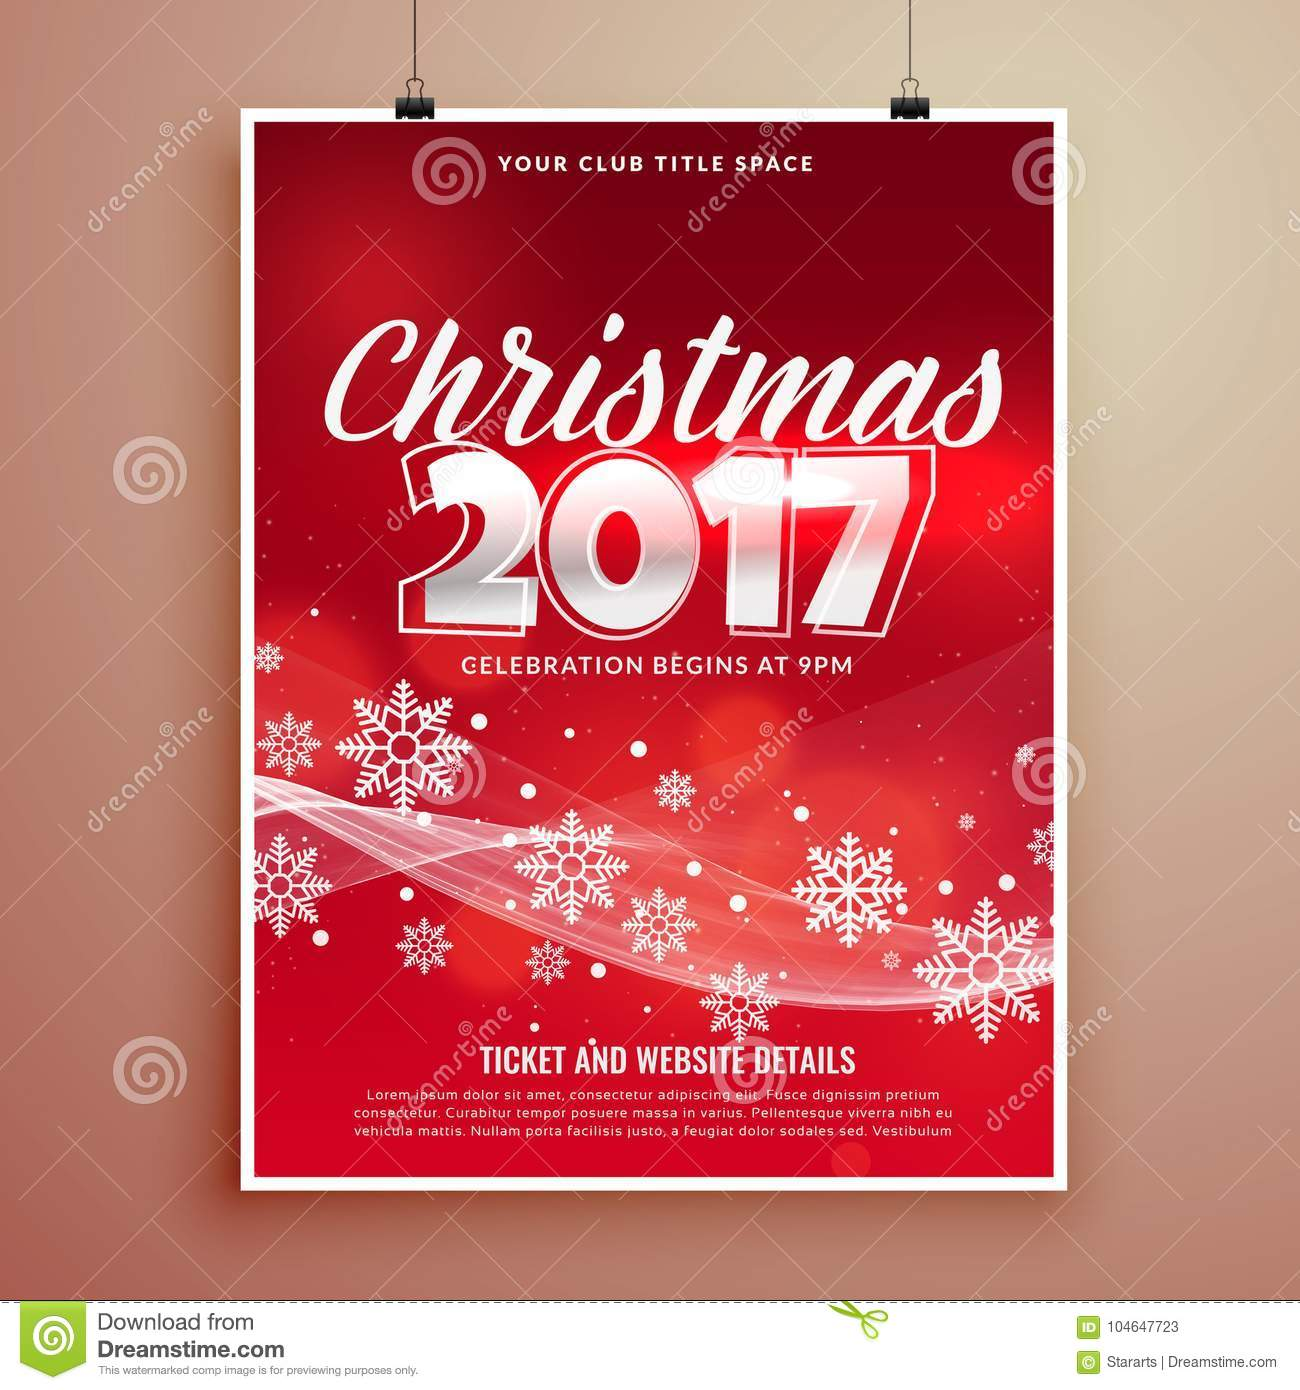 Stylish Red Christmas Party Event Invitation Card Template Desig